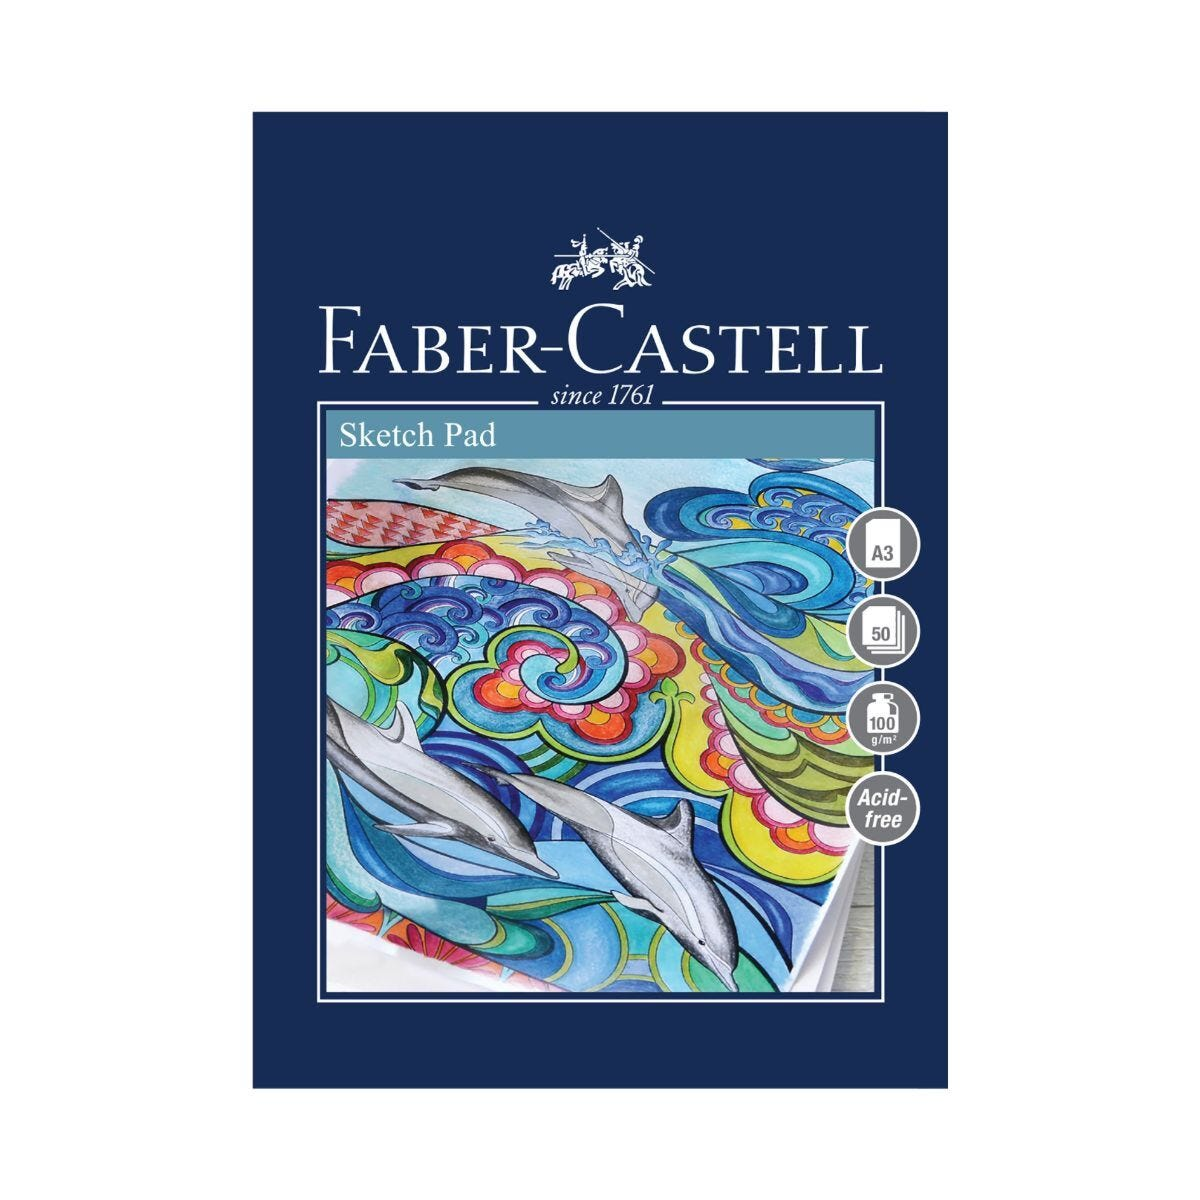 Faber Castell Creative Studio Sketch Pad 50 Sheets A3